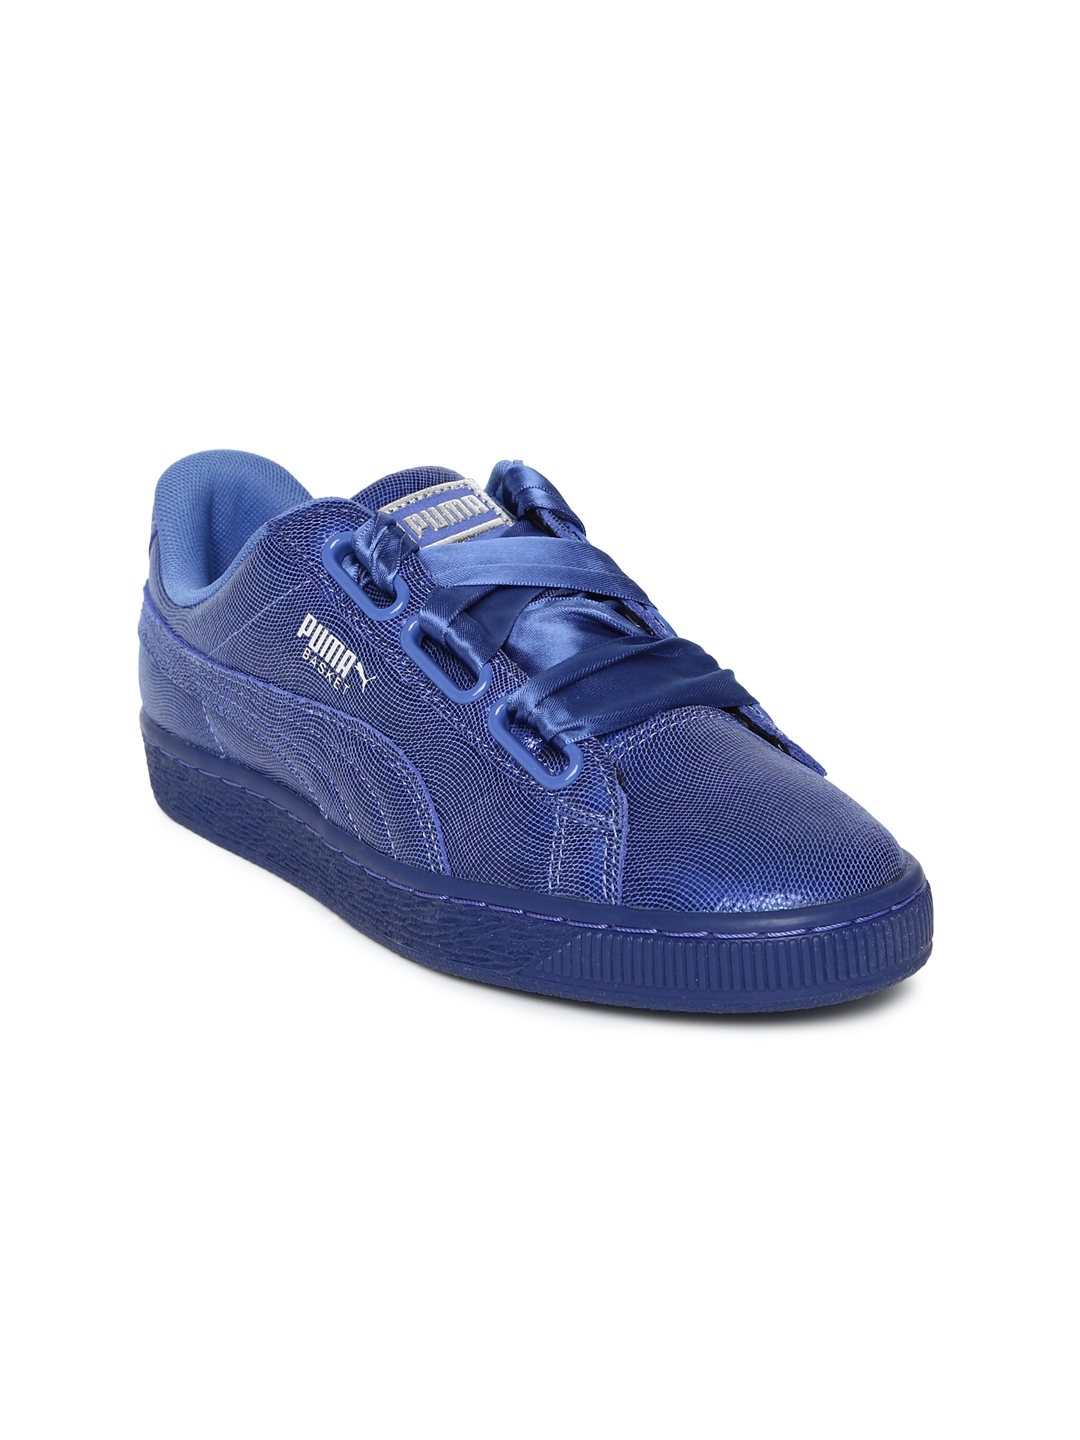 new style 765d3 9b1db Buy Puma Women Blue Basket Heart NS Sneakers - Casual Shoes ...